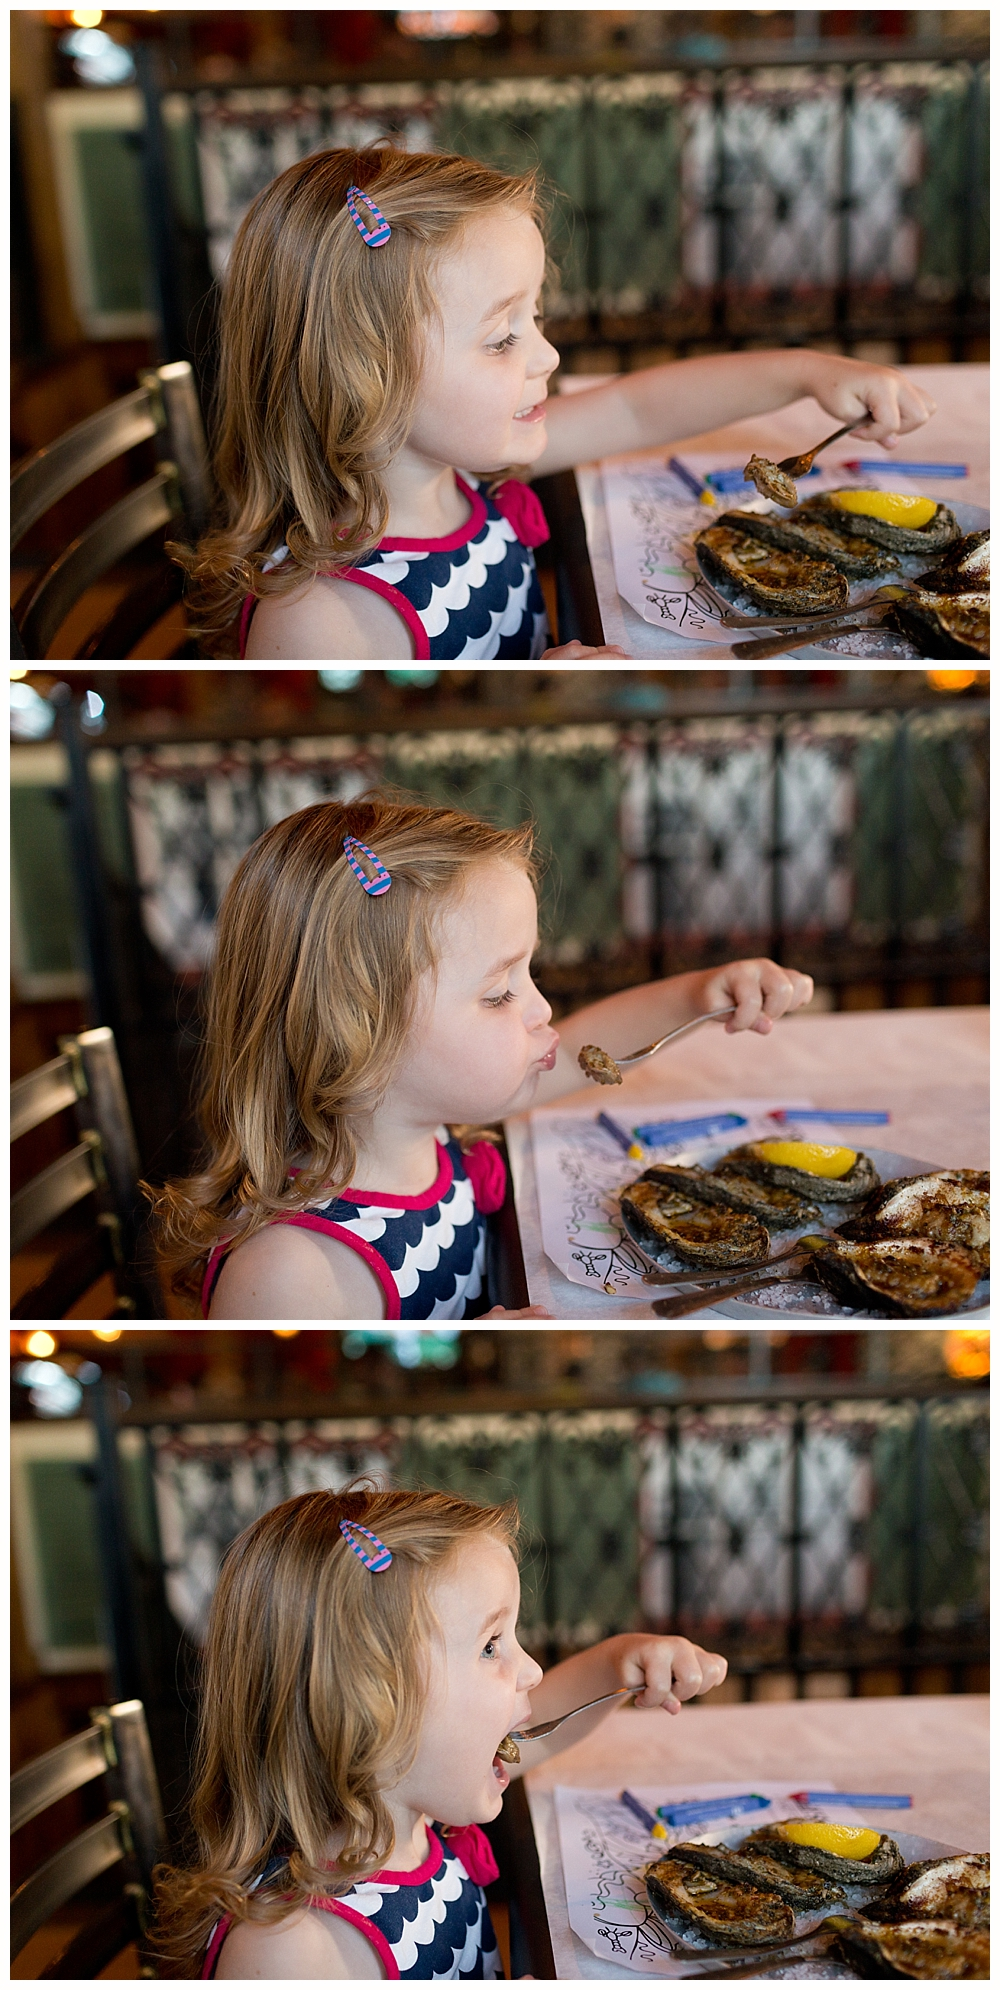 three-year-old girl eating oysters at Half Shell Oyster House in Biloxi, MS